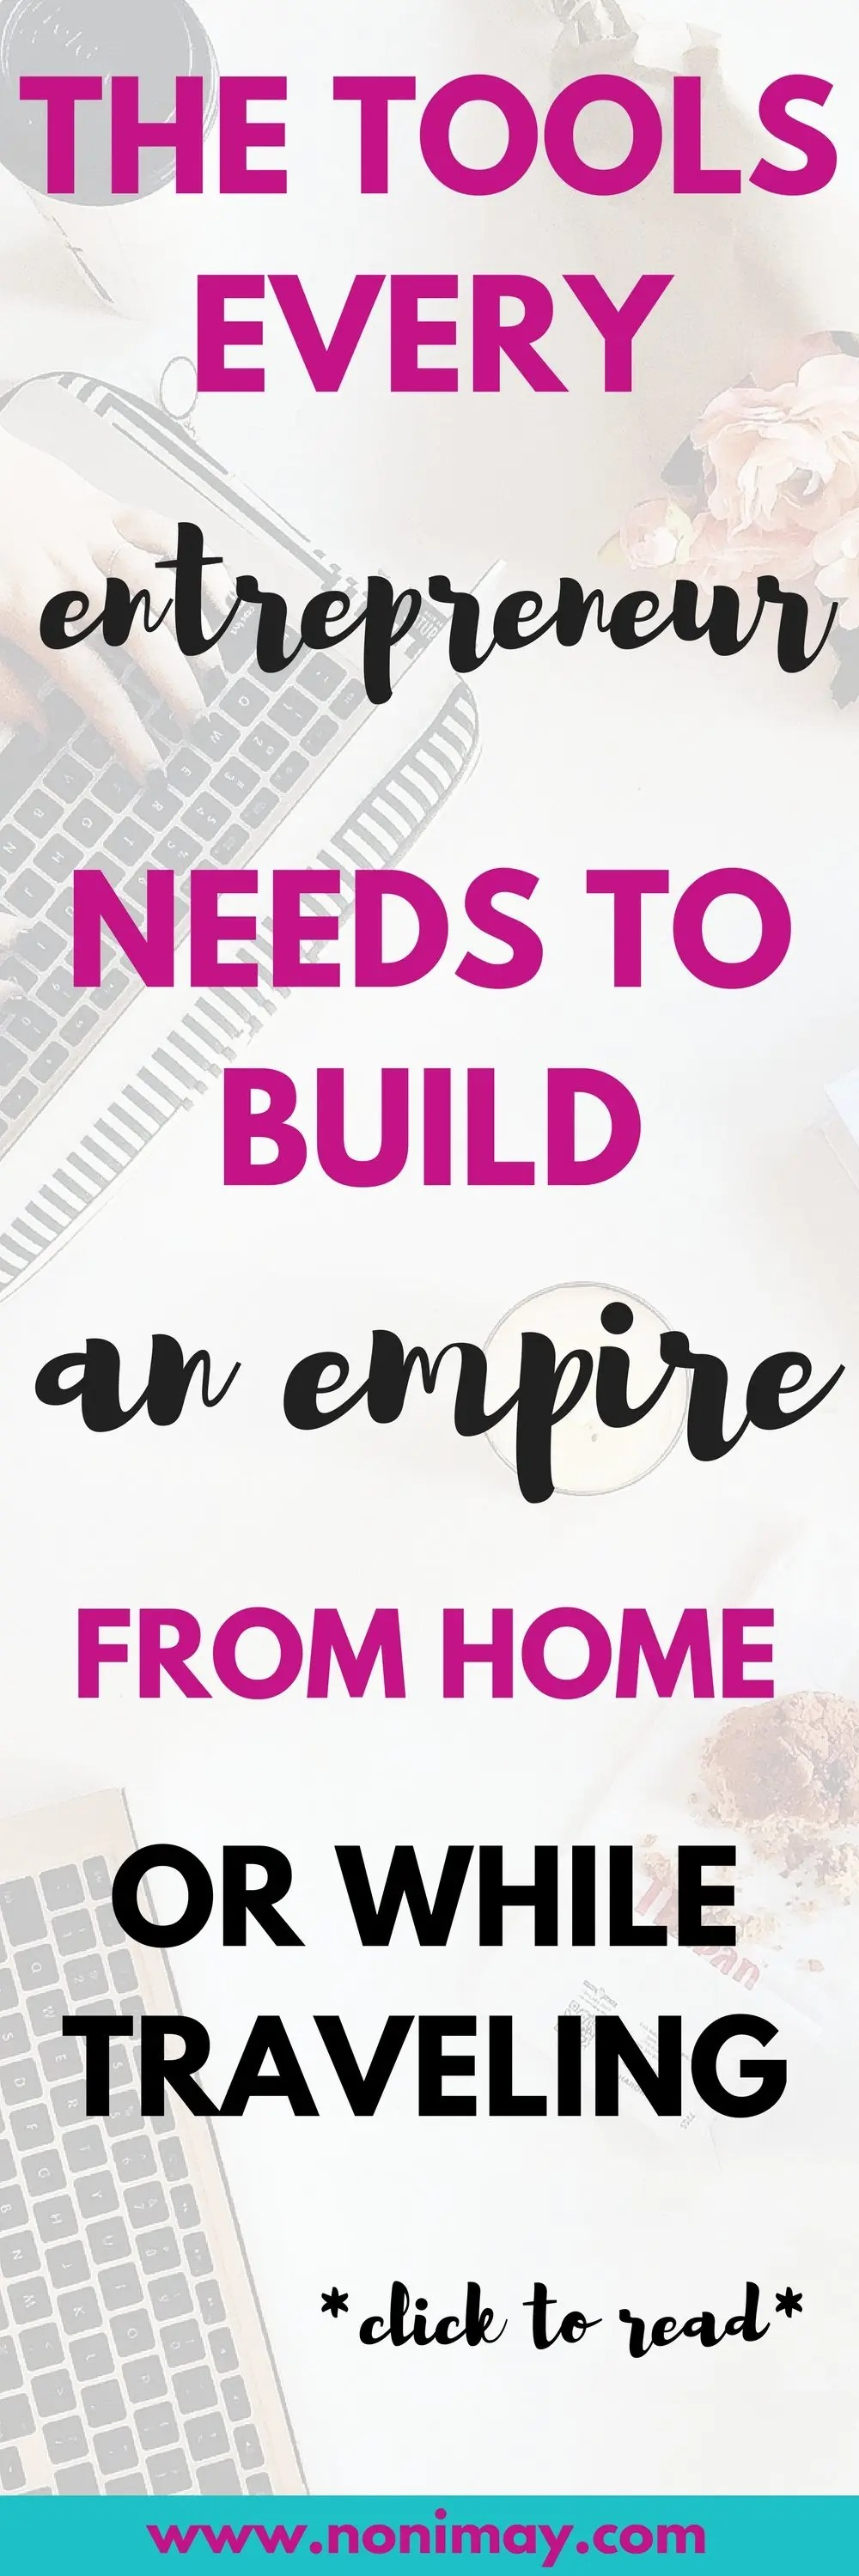 The tools every entrepreneur needs to build an empire from home or while traveling